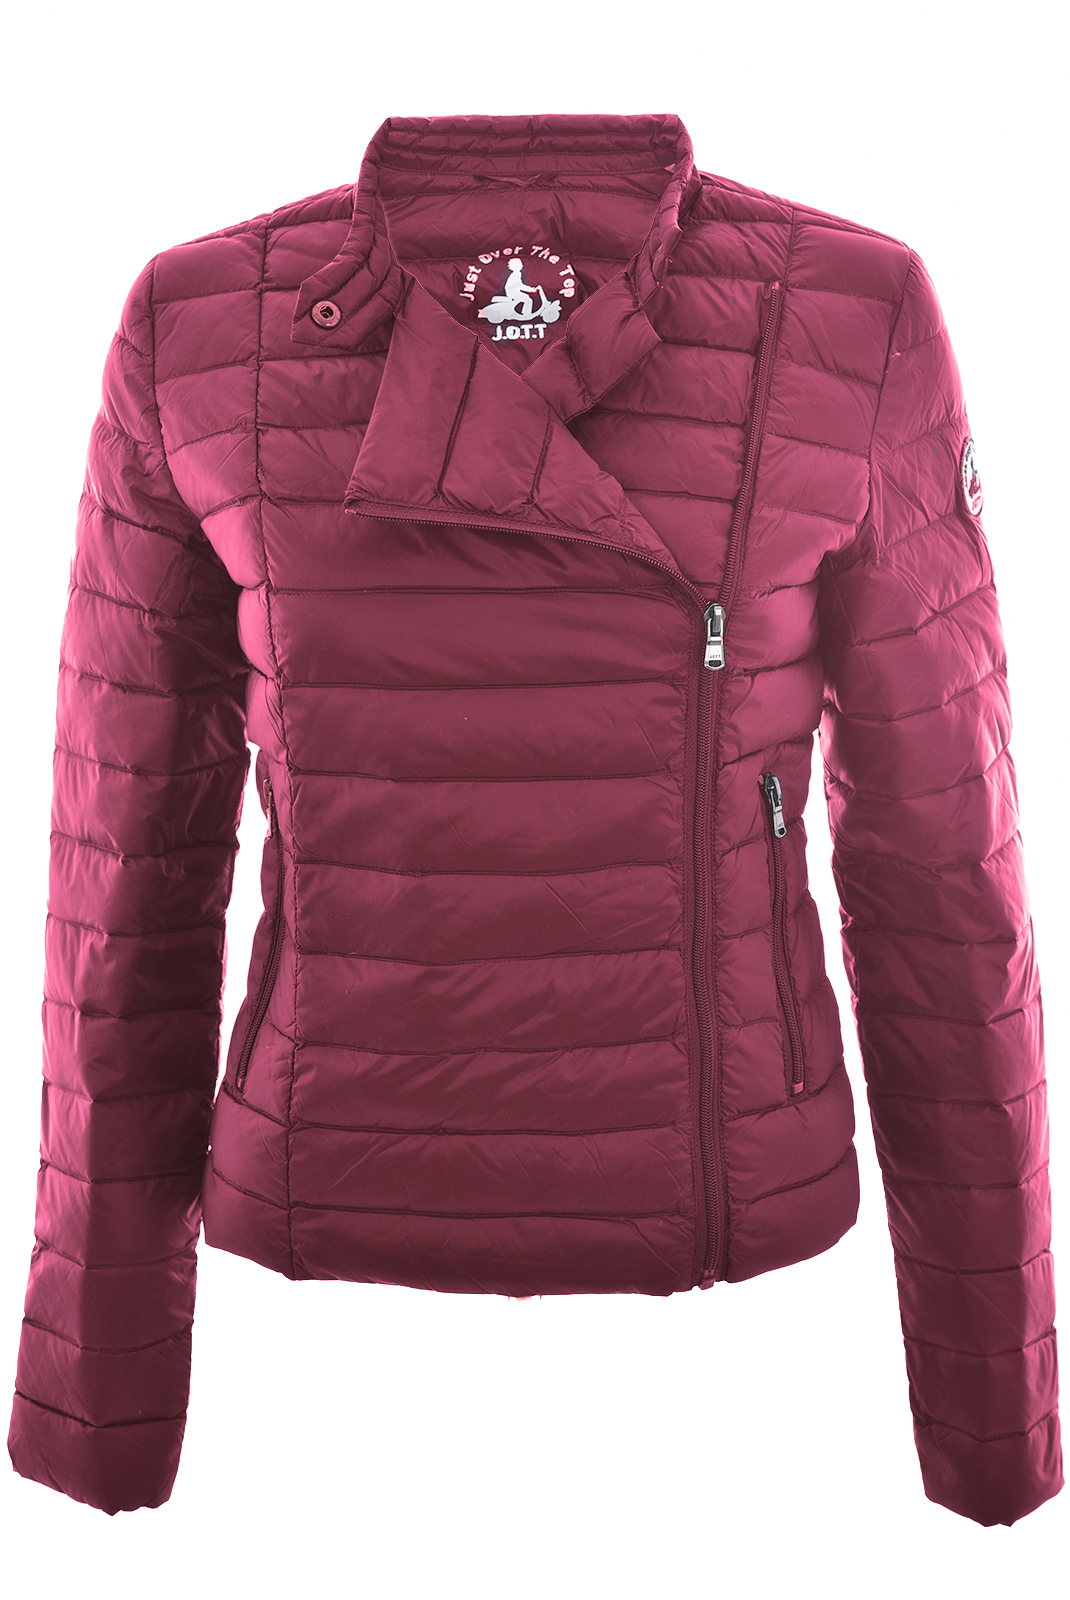 Blouson  Just over the top PLEASURE 418 FRAMBOISE